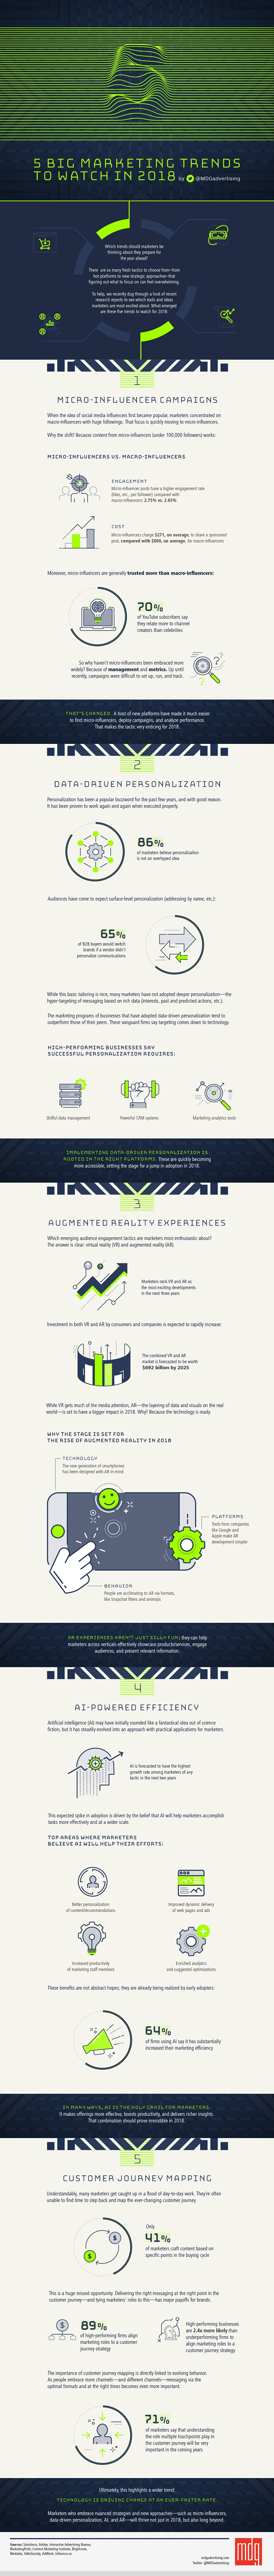 5 Big Marketing Trends to Watch in 2018 [Infographic] | Social Media Today